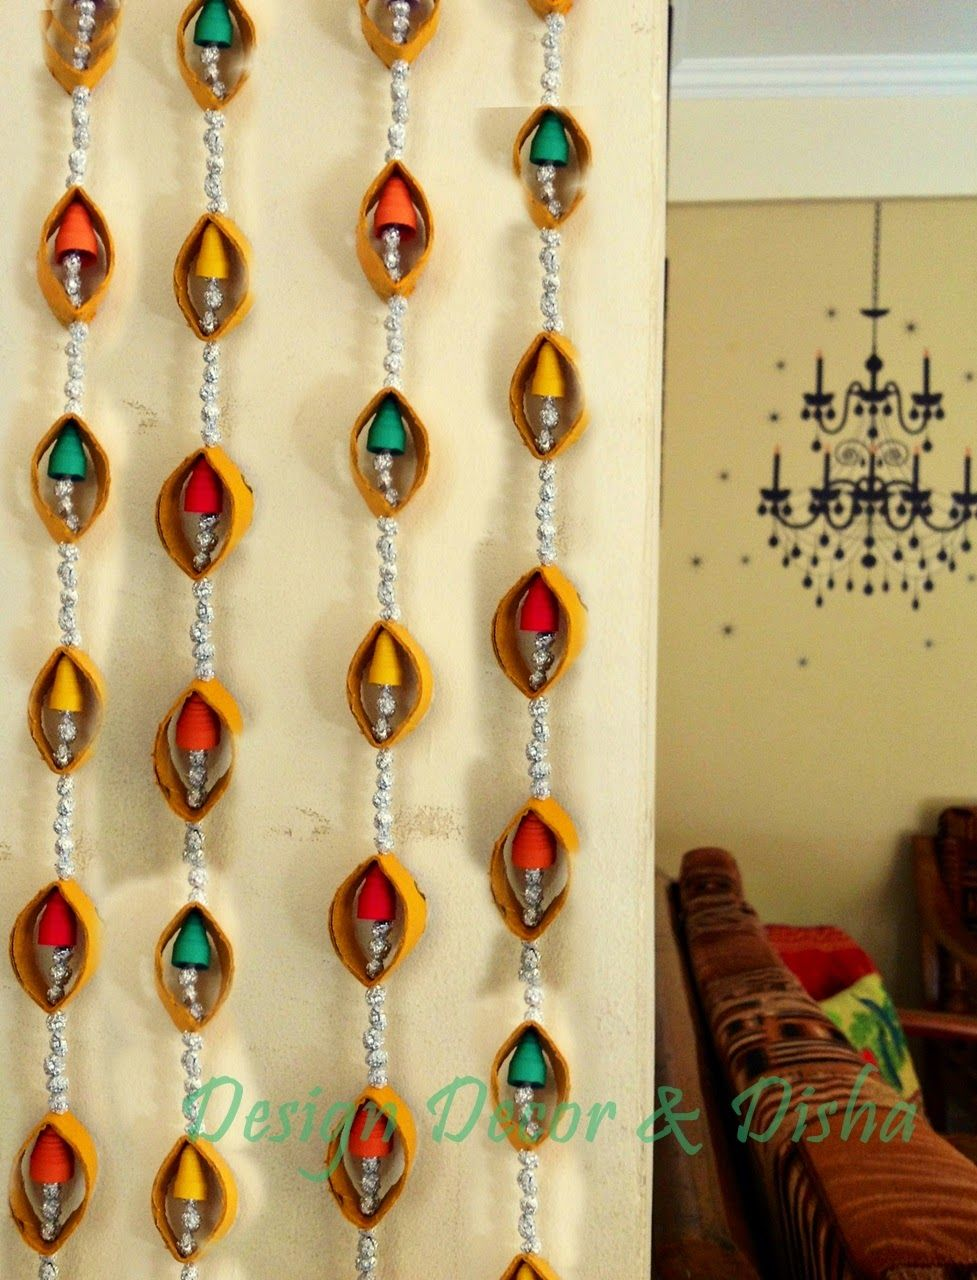 Design decor disha diwali diy made easy with venue for How to make diwali decorations at home